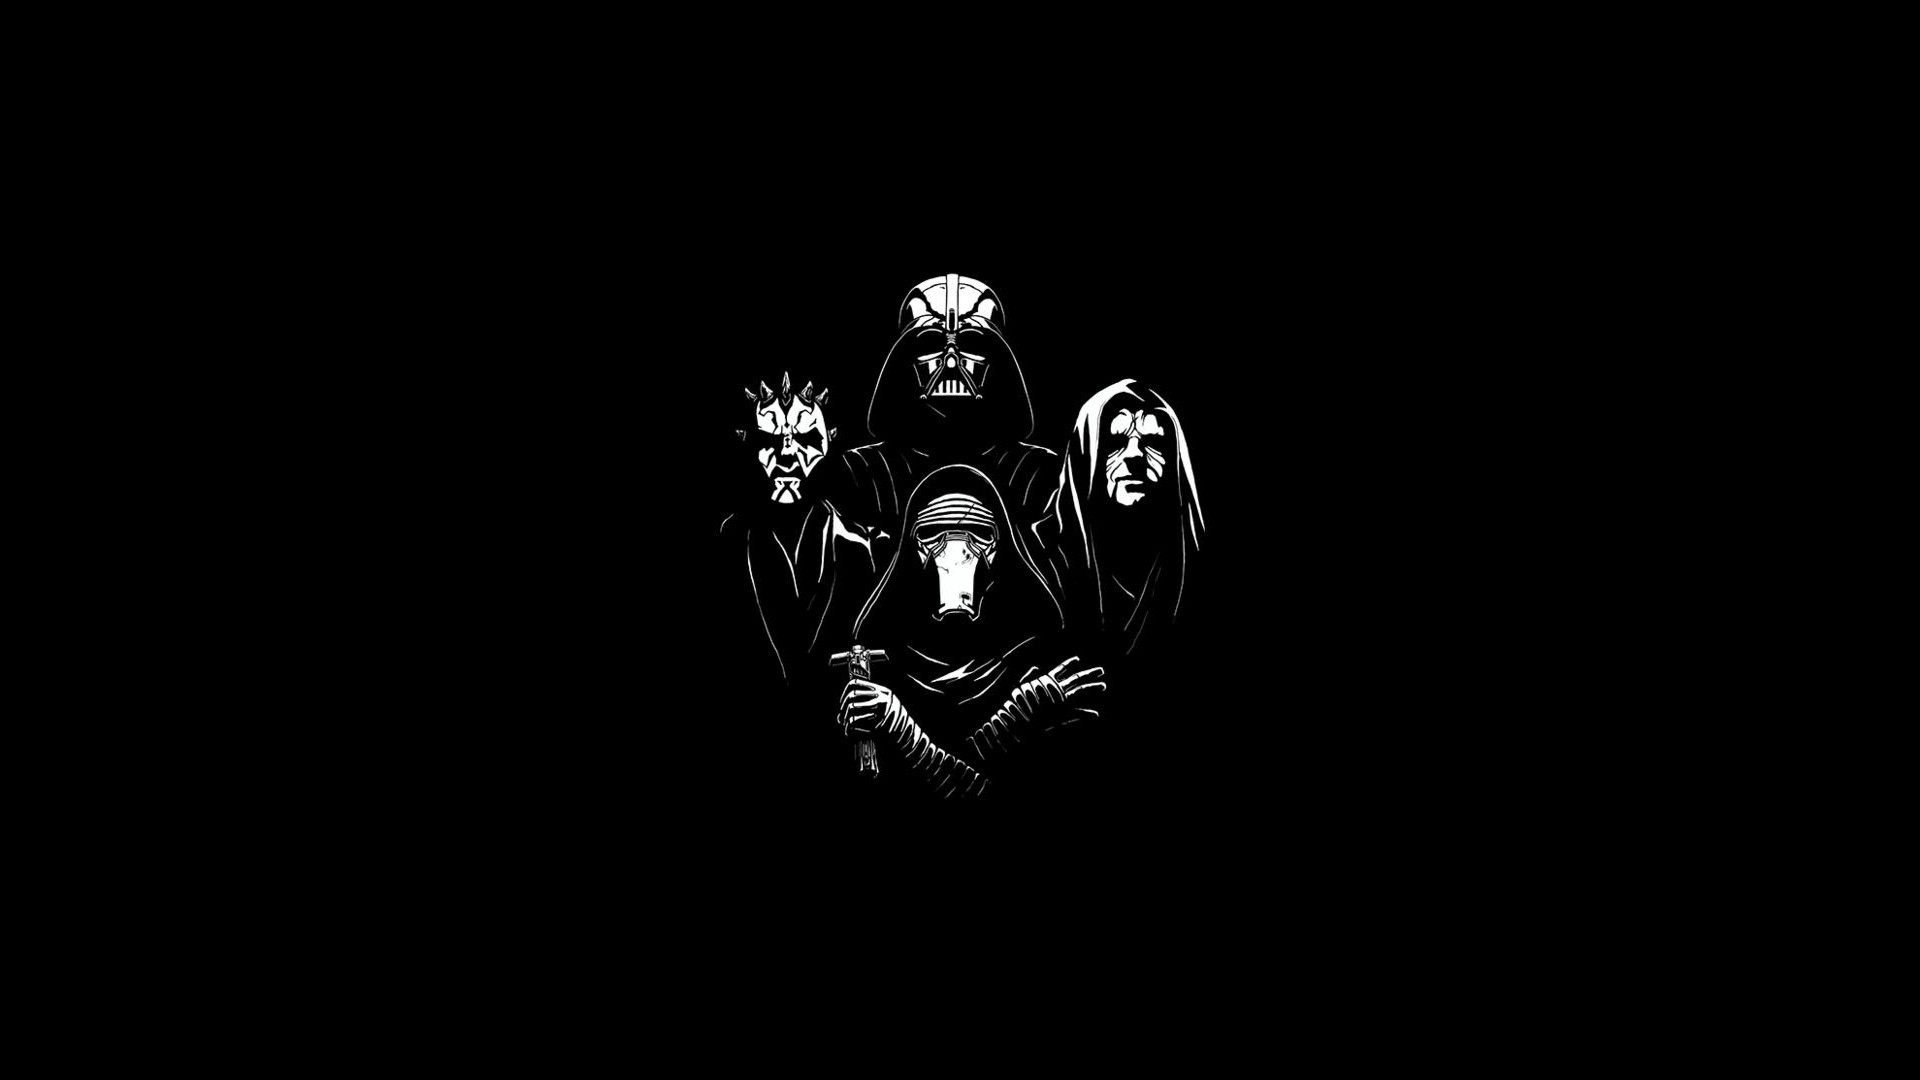 Star Wars, Darth Vader, Darth Sidious, Darth Maul, Kylo Ren, Queen Wallpapers  HD / Desktop and Mobile Backgrounds